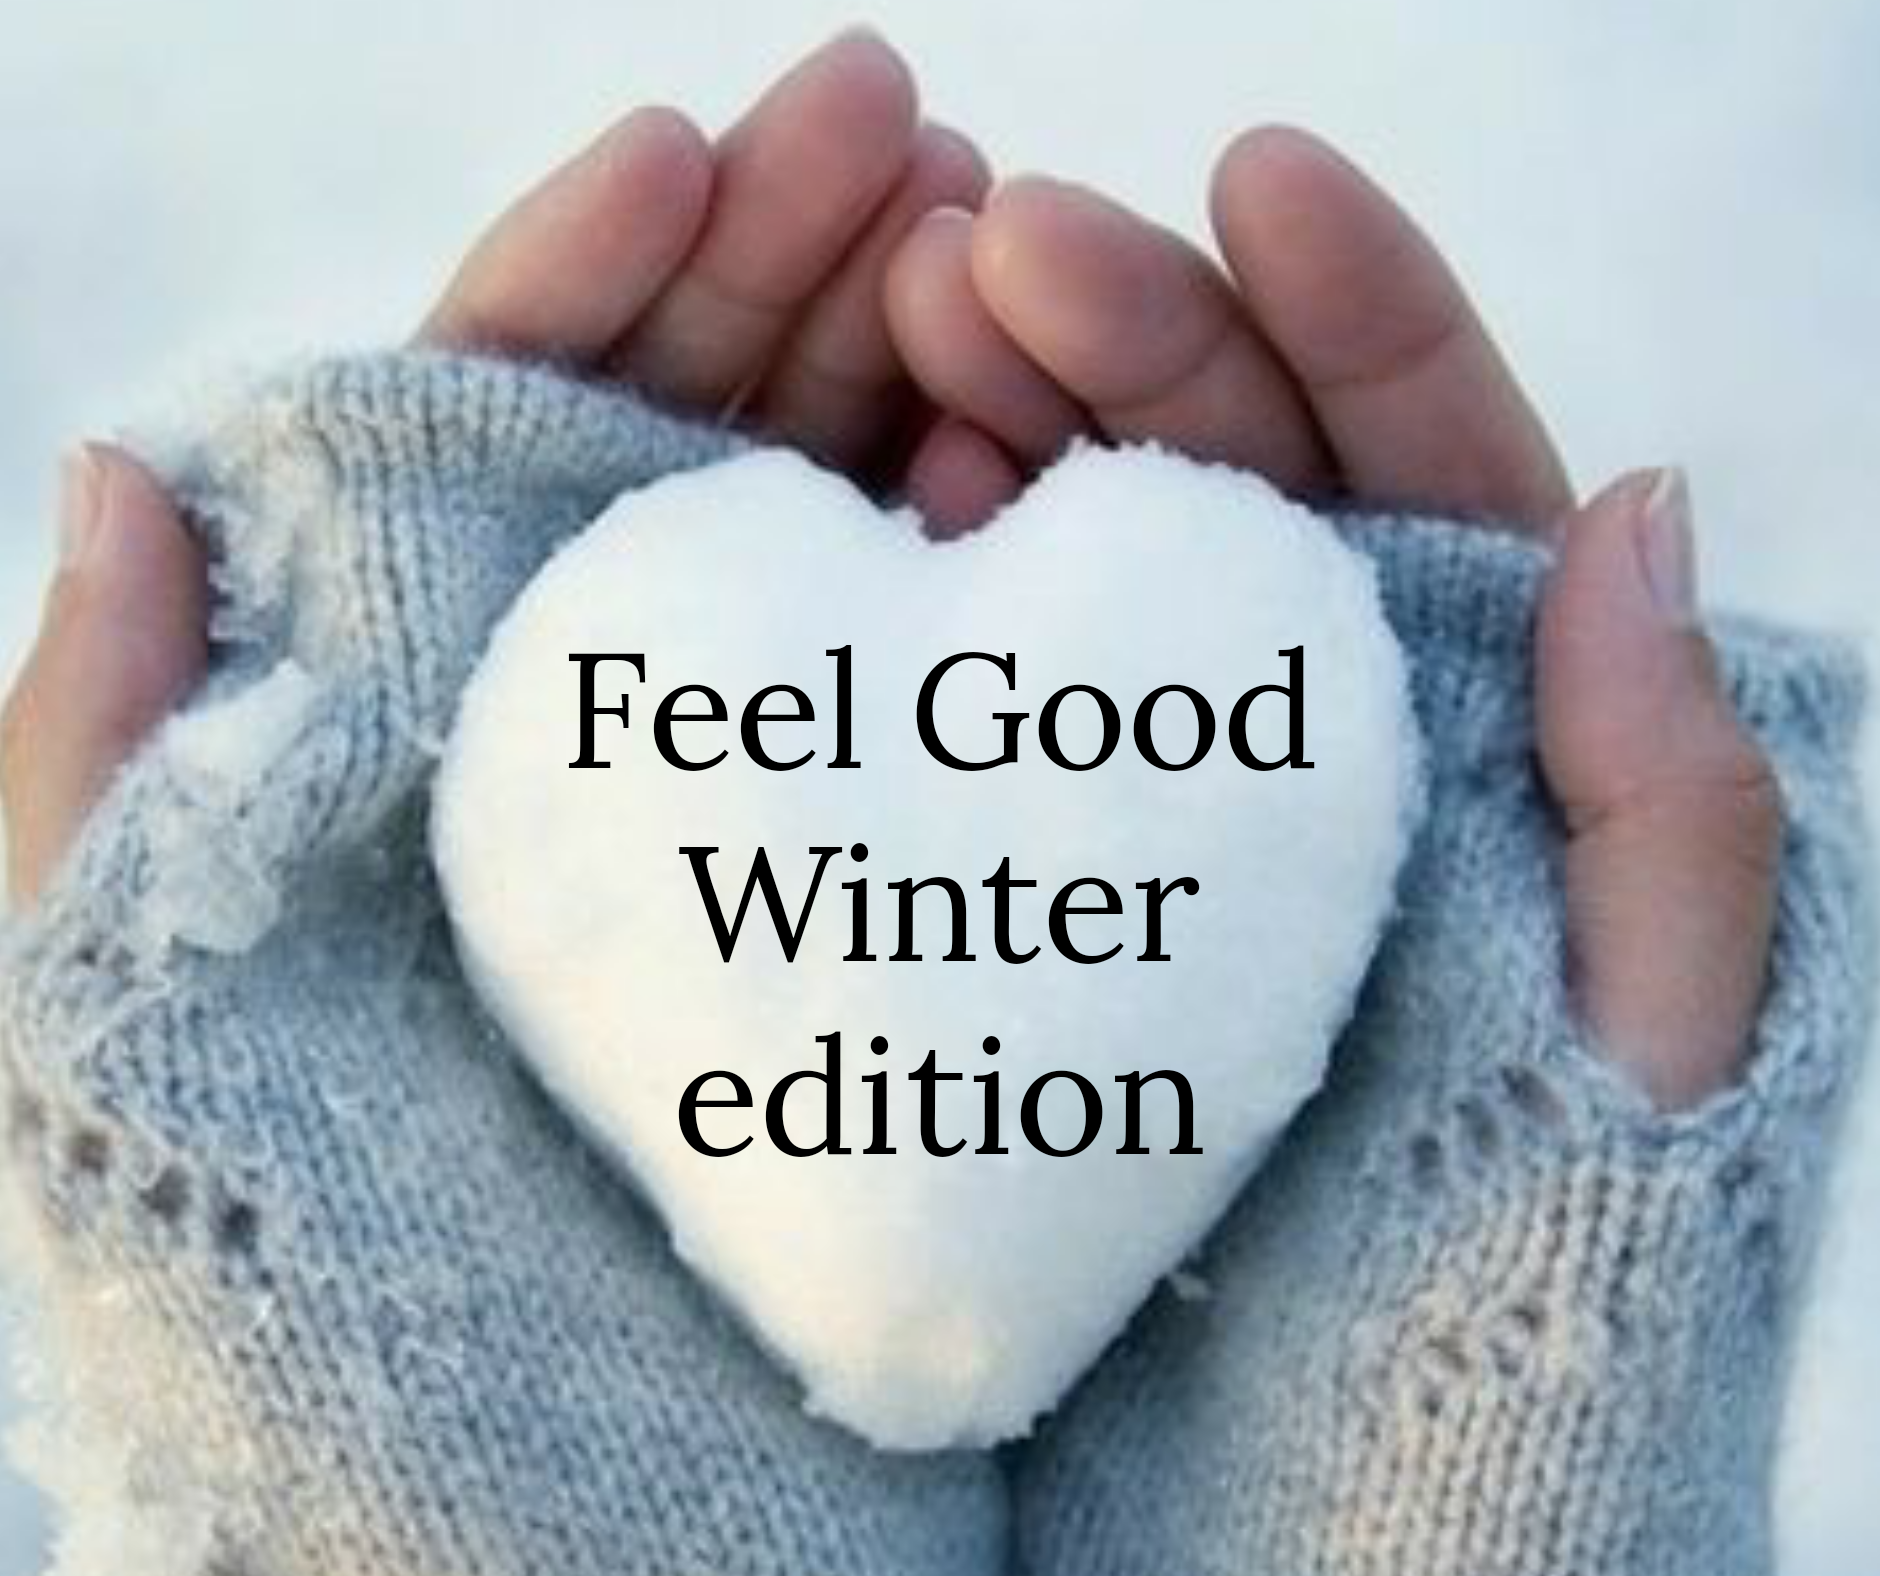 Feel Good Winter Edition